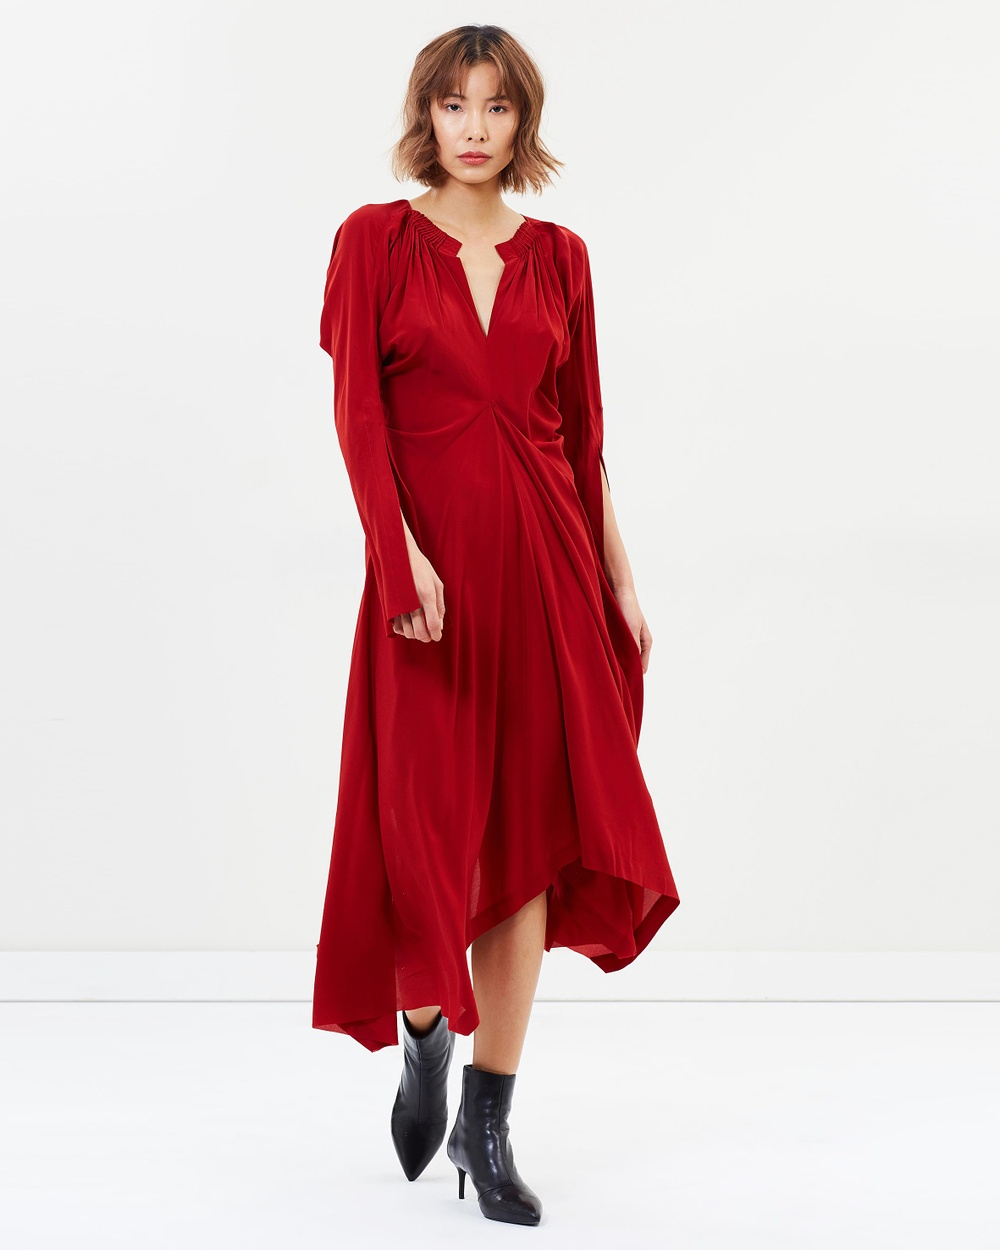 KITX Unity Pleat Dress Dresses Red Unity Pleat Dress